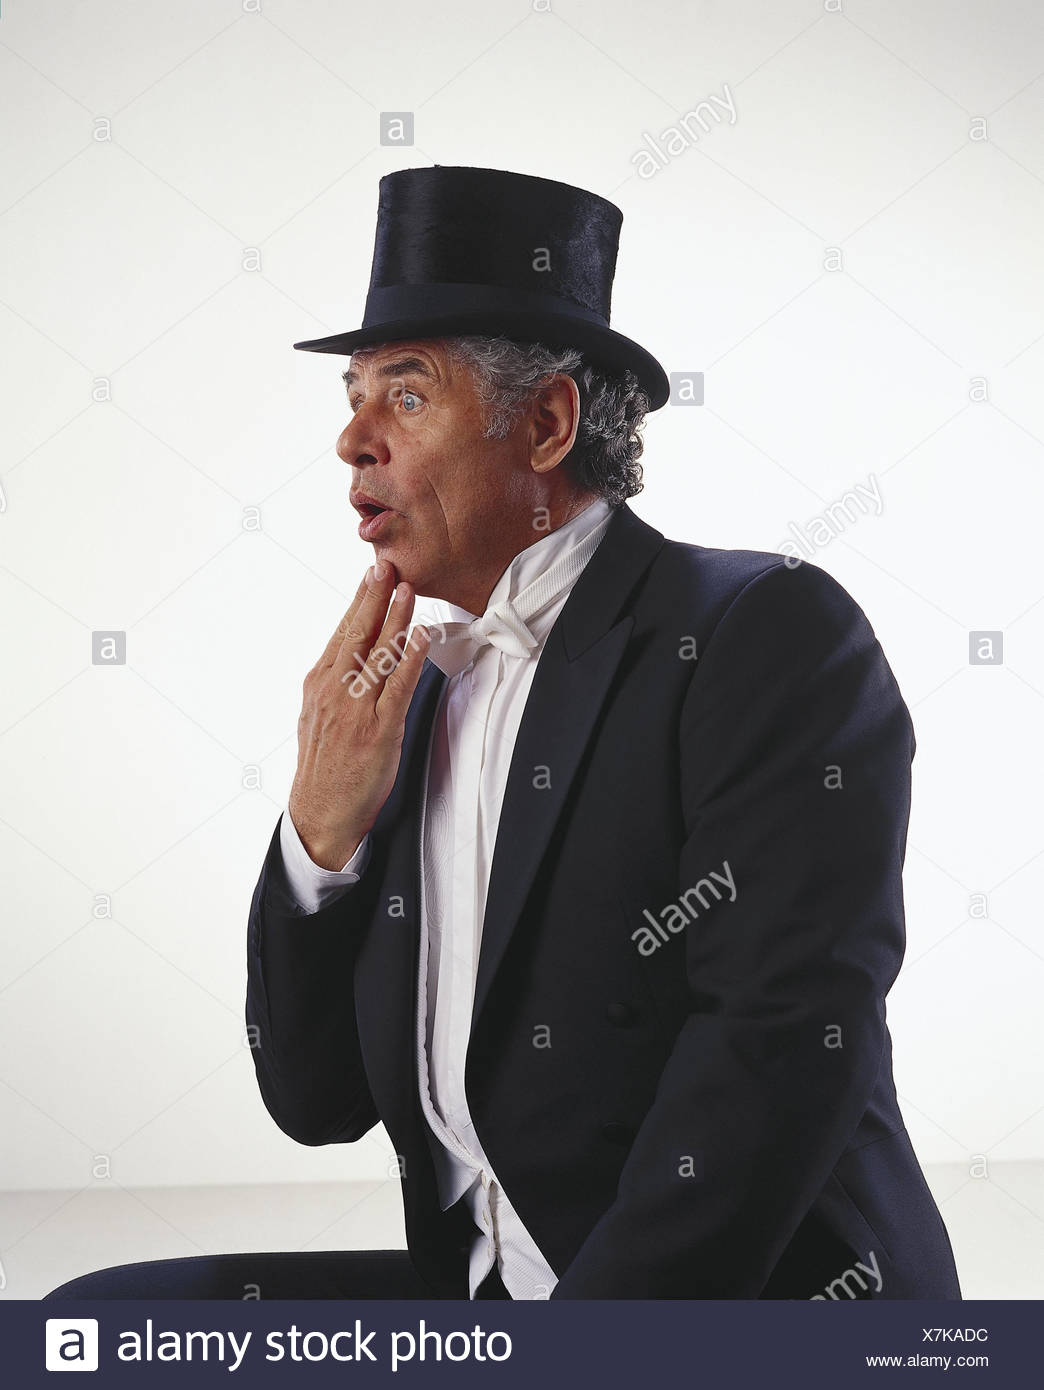 Man, tails, cylinder, amazes, gesture, half portrait, side view, senior, suit, headgear, top hat, elegantly, festively, facial play, surprises, there are astonished, taken aback, astonishment, bewilderment, surprise, preview, studio, cut outs, - Stock Image